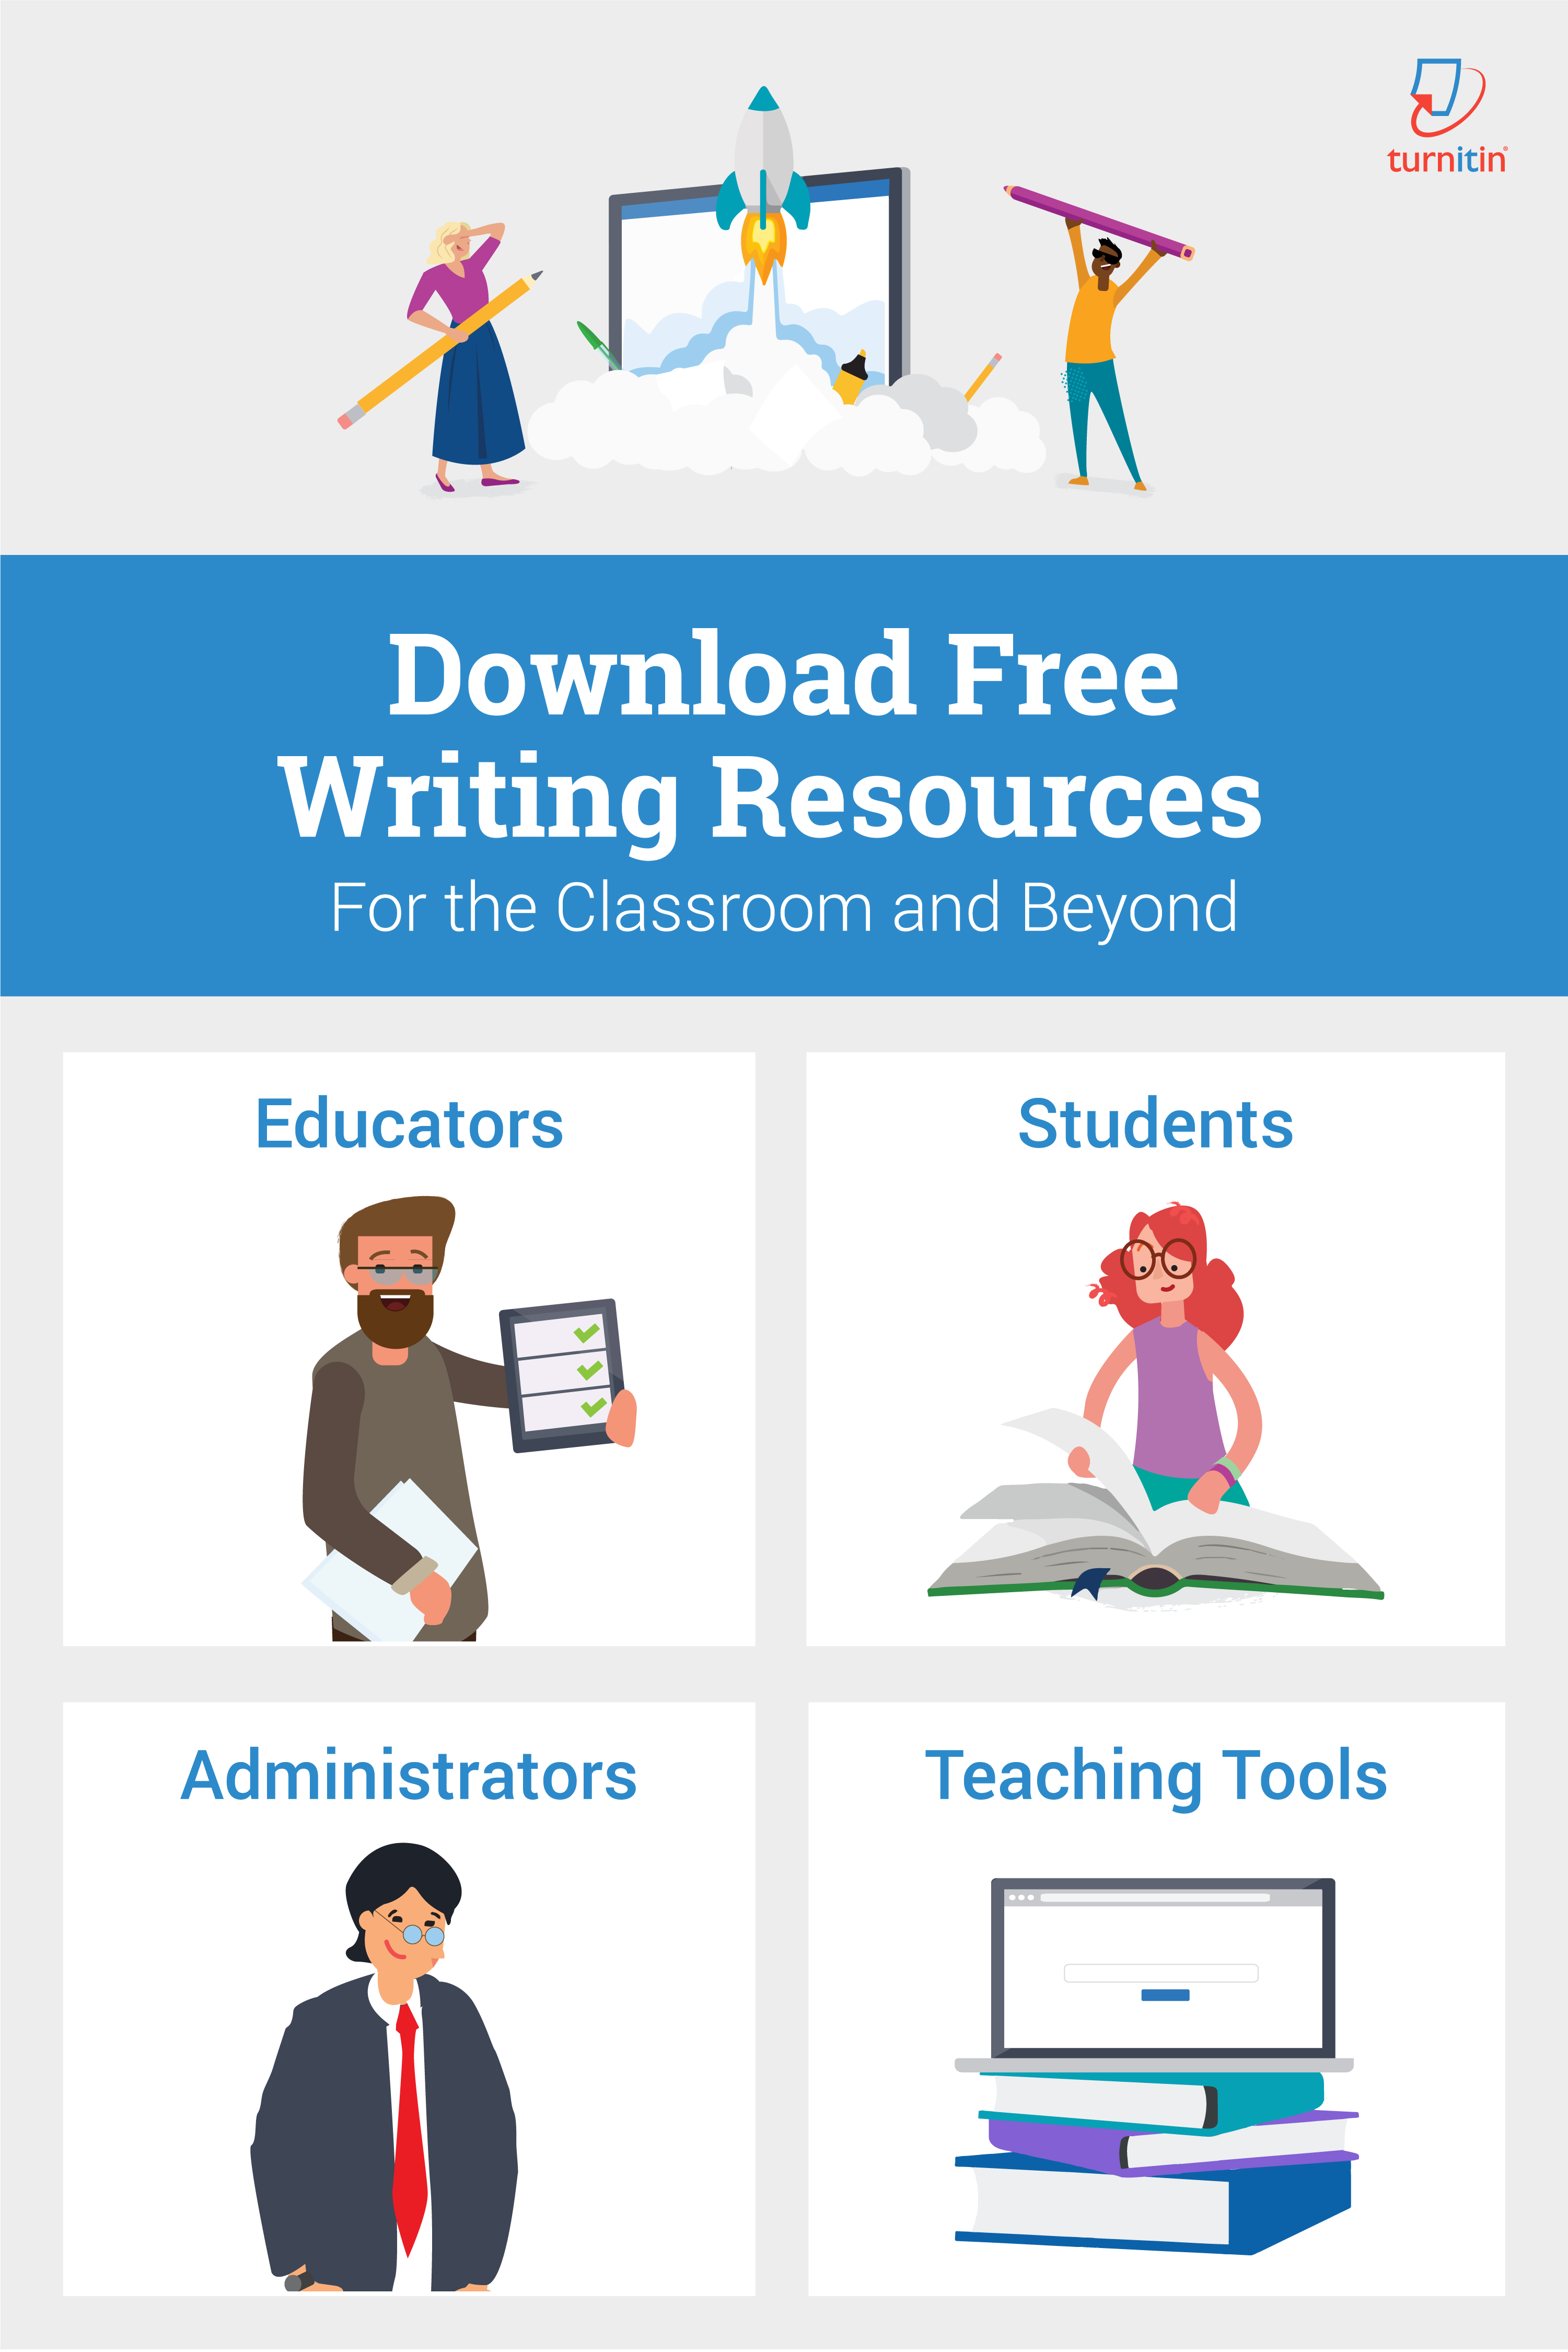 Download Free Lesson Plan Rubric Worksheet And Presentation About Writing Paraphrasing Fr With Image Student Assignments Teaching Song Lyrics Lyric